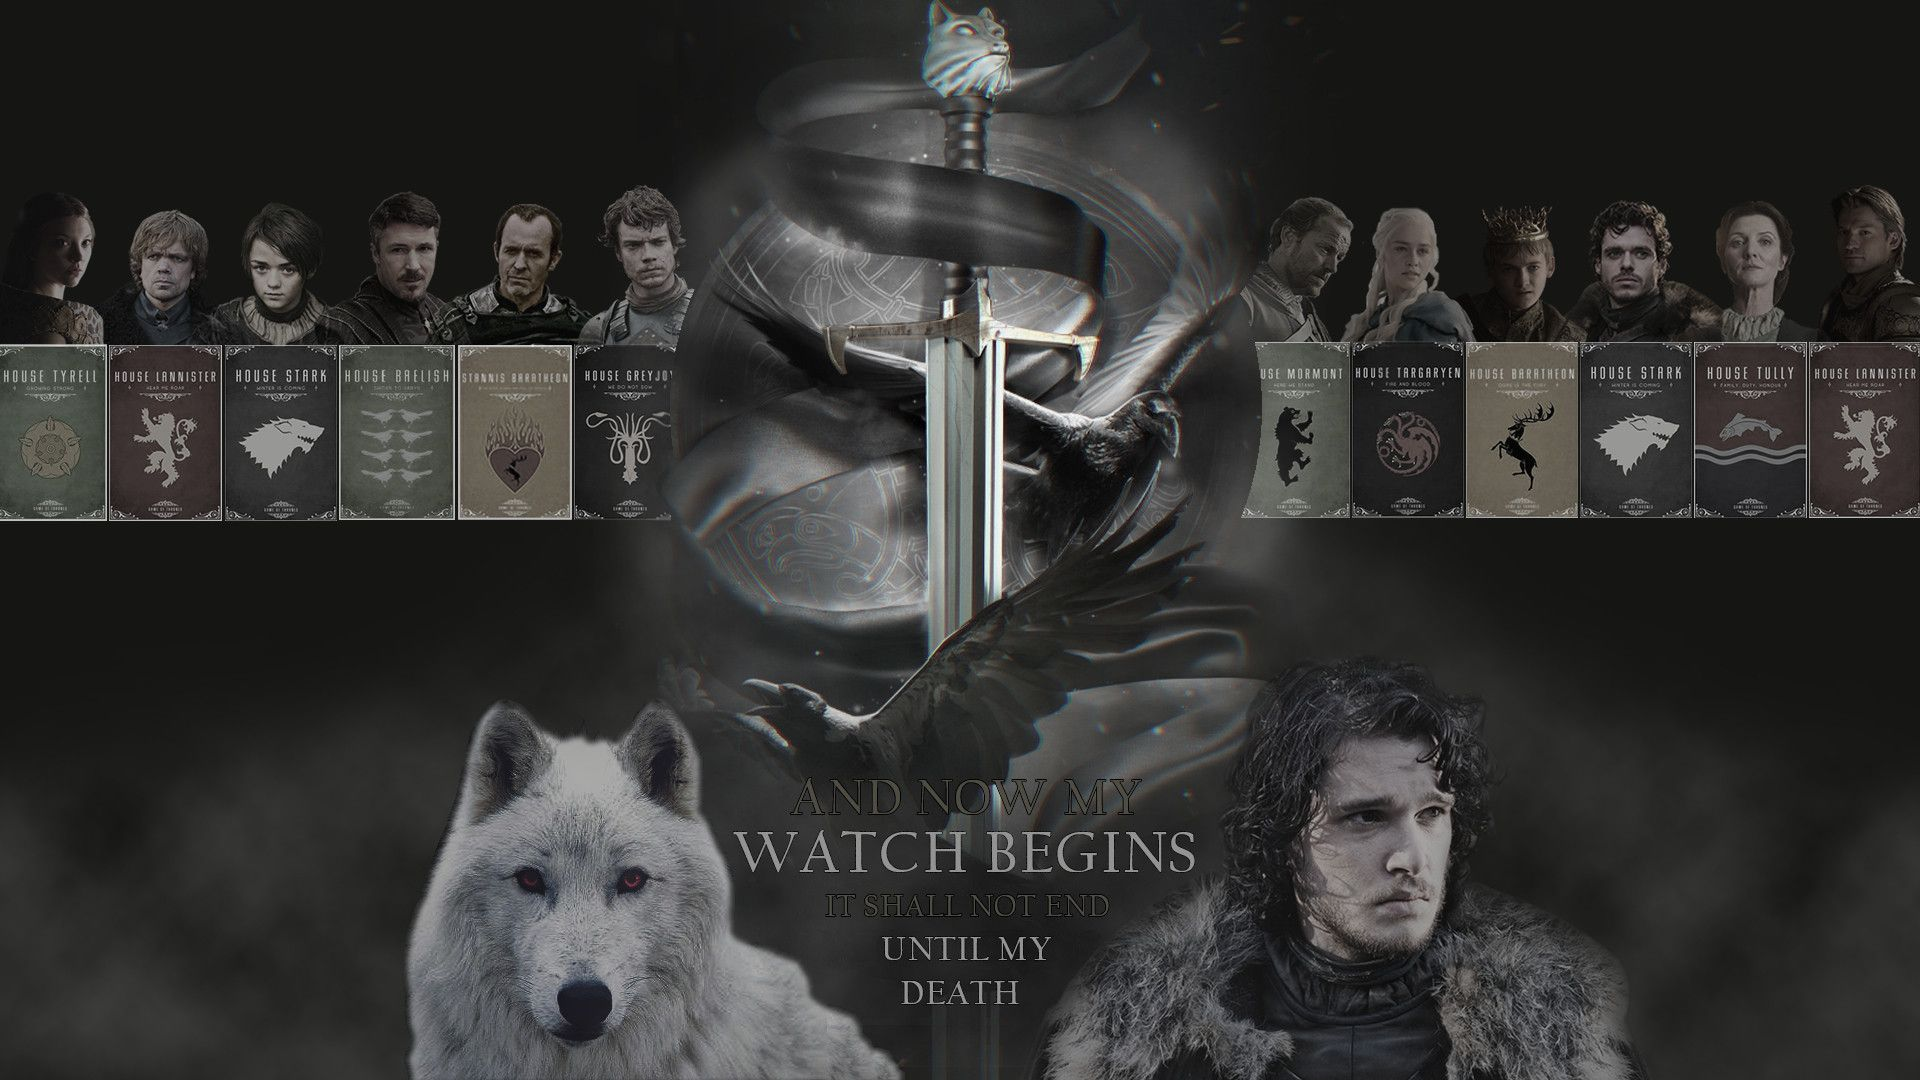 Game Of Thrones Wallpaper My First Fan Made Game Of Thrones Wallpaper 1920x1080 Includes